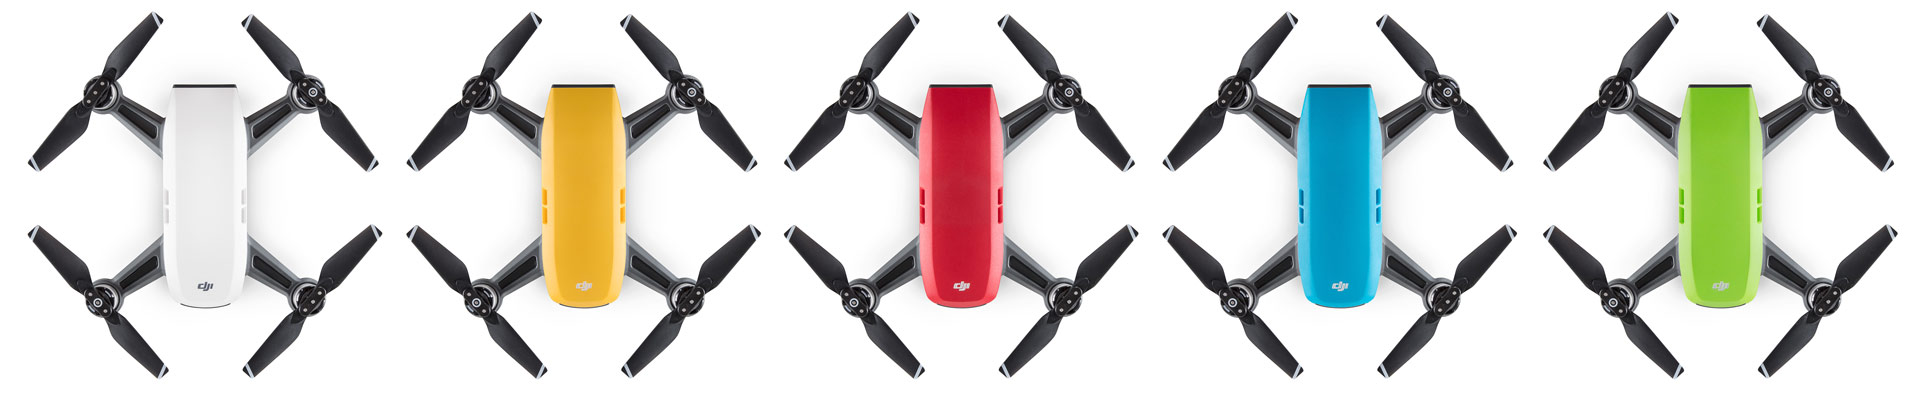 remote control drones with camera with Dji Spark Drone Control Moving Hands on Dronium 3xtm Drone With Live Streaming Camera moreover Best Quadcopters For 2014 Holiday Gift Giving furthermore Uav Industrial Design Design Robot 1204473 in addition Drone Technology Helps Agents Sell Houses as well 200578465.